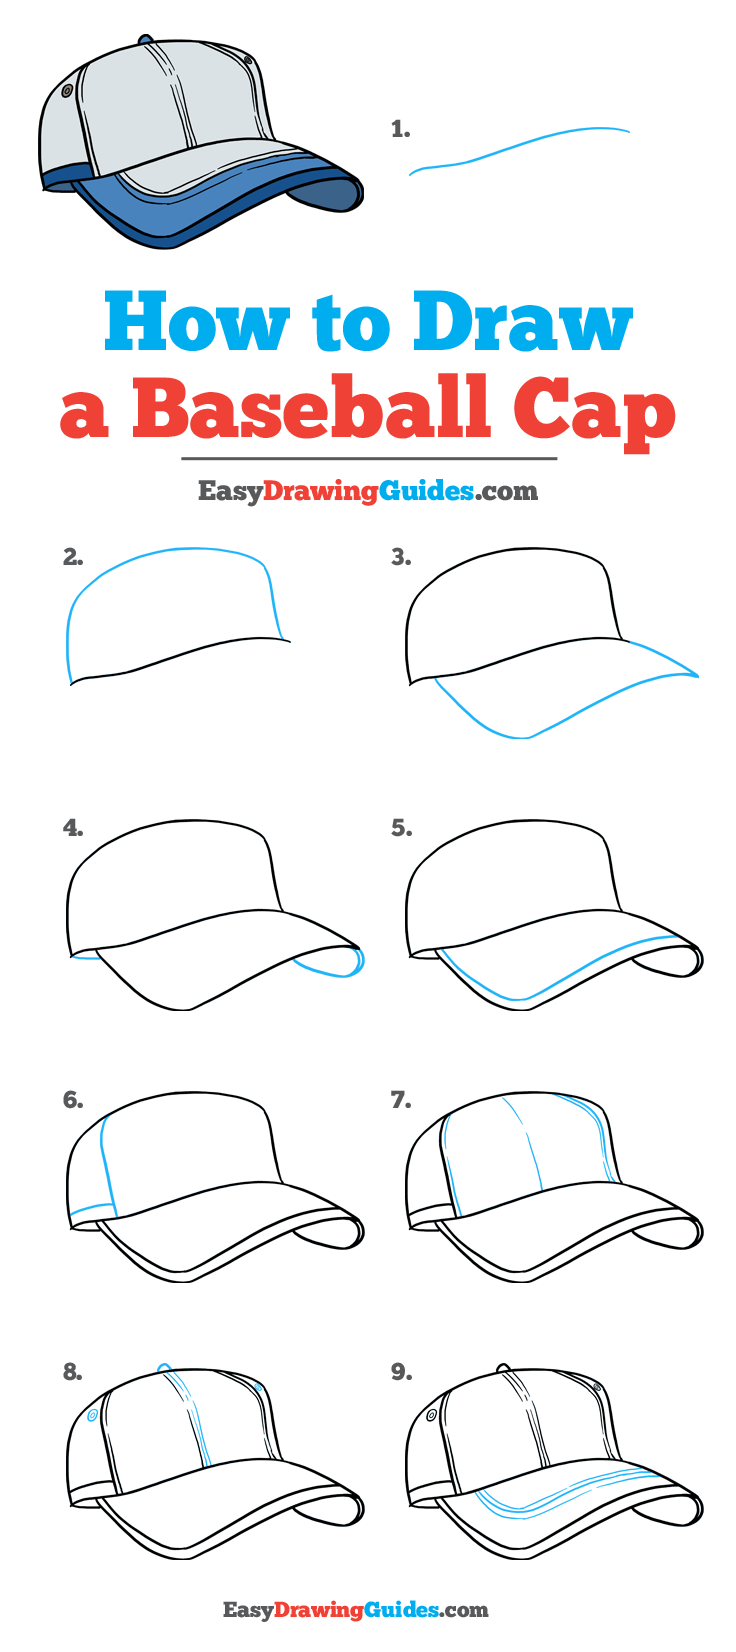 How To Draw A Baseball Cap Really Easy Drawing Tutorial Drawing Tutorial Easy Drawing Tutorials For Kids Drawing For Beginners